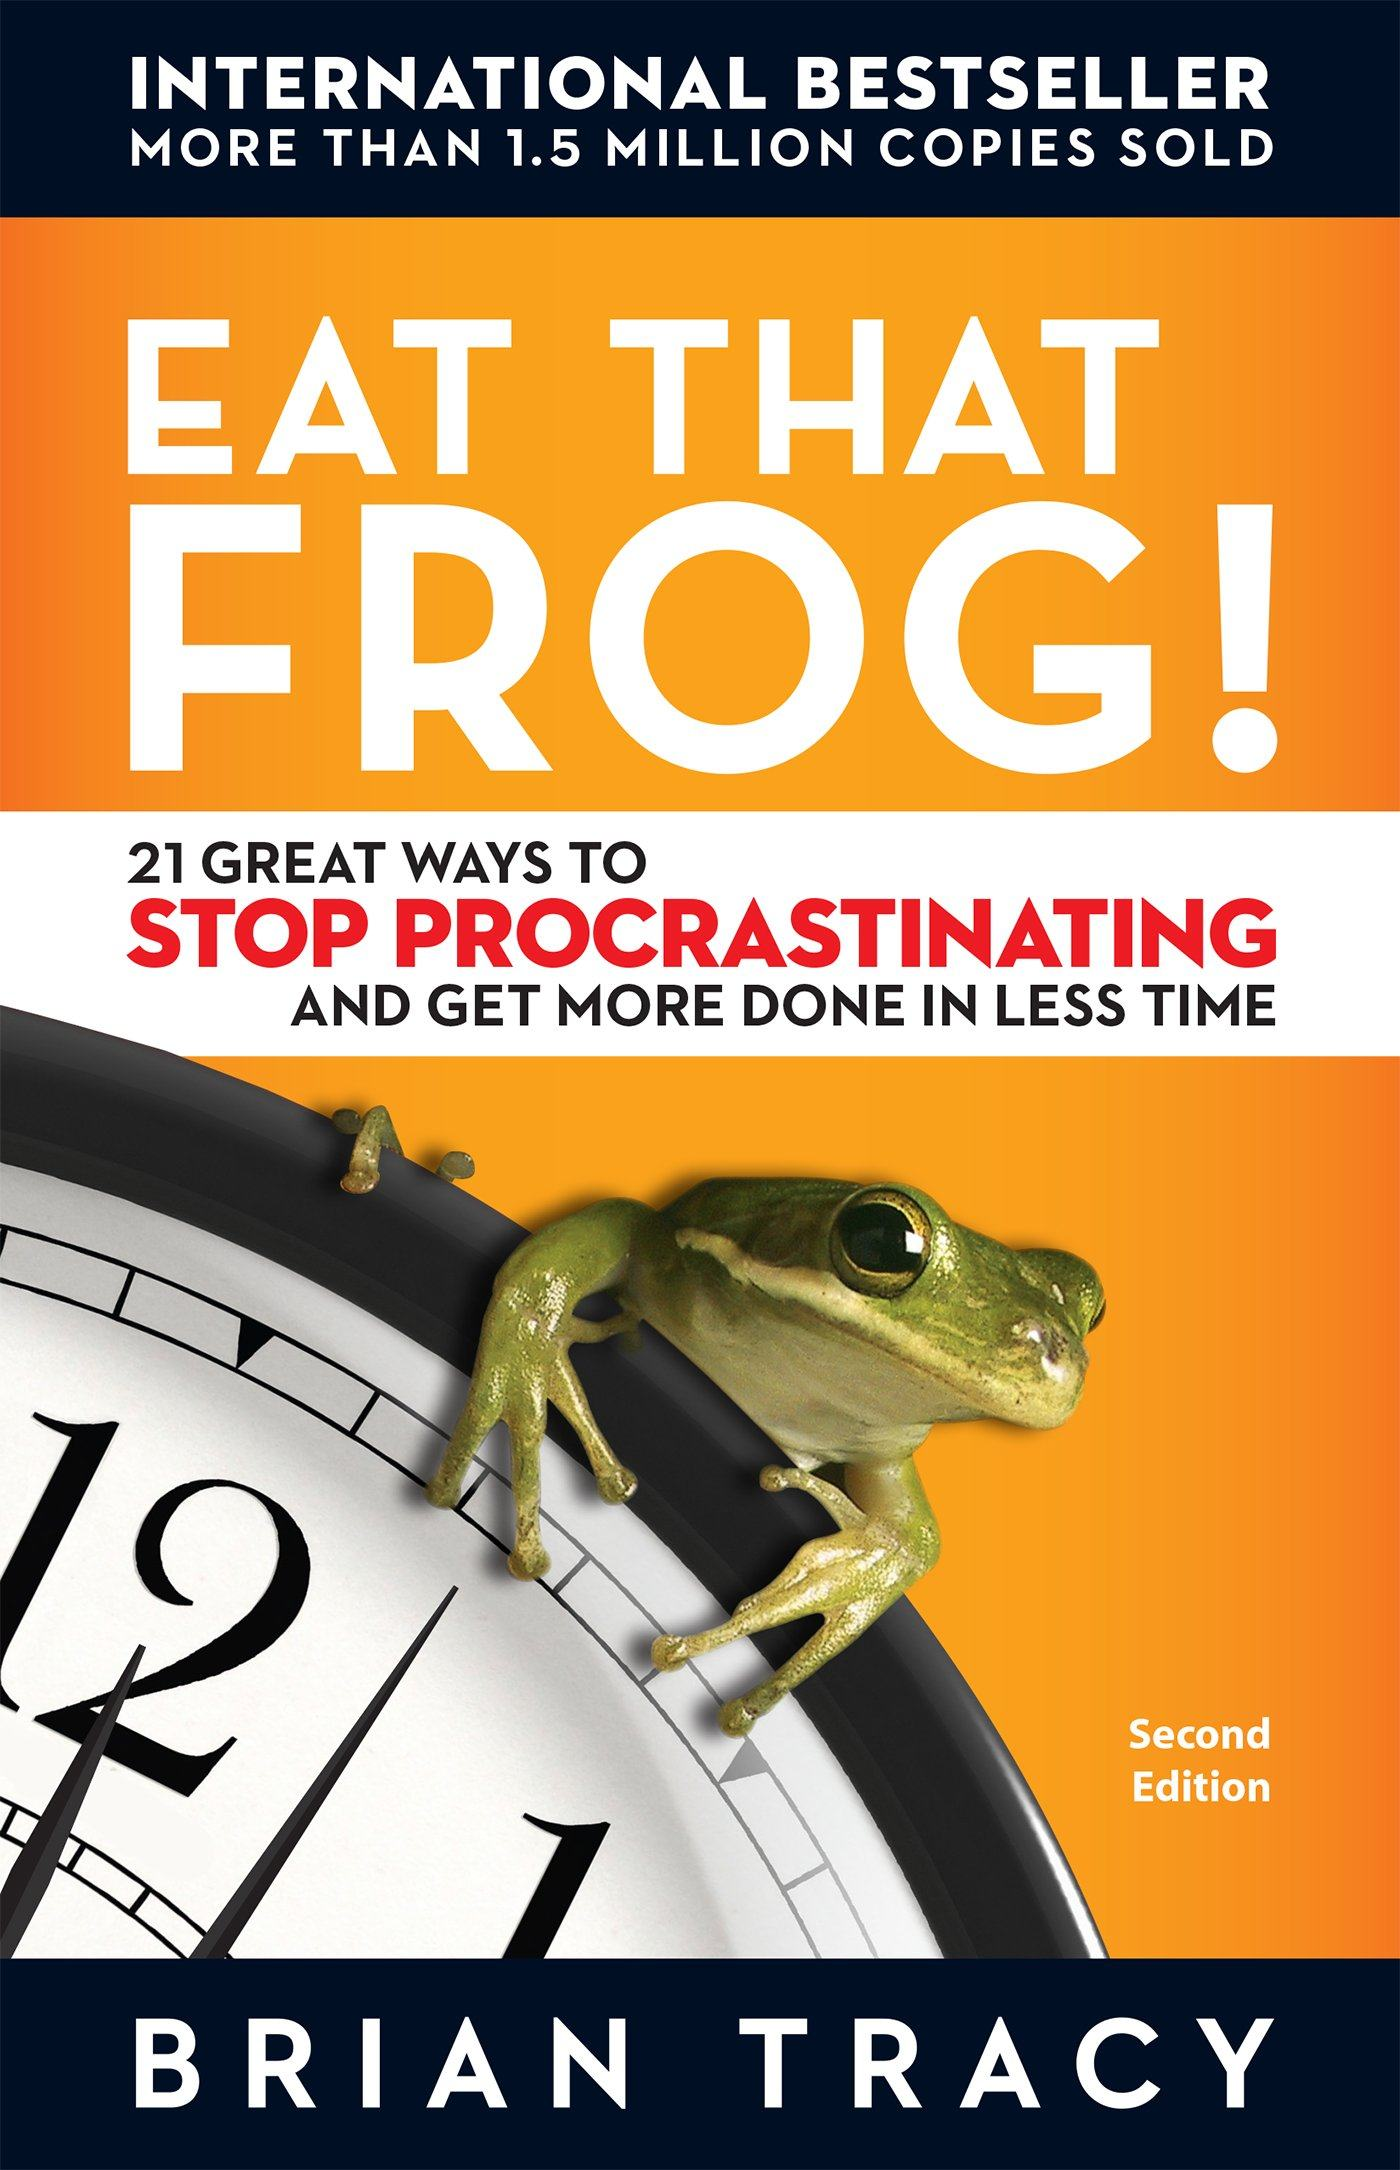 Eat that frog! 21 great ways to stop procrastinating and get more done in less time Book Cover